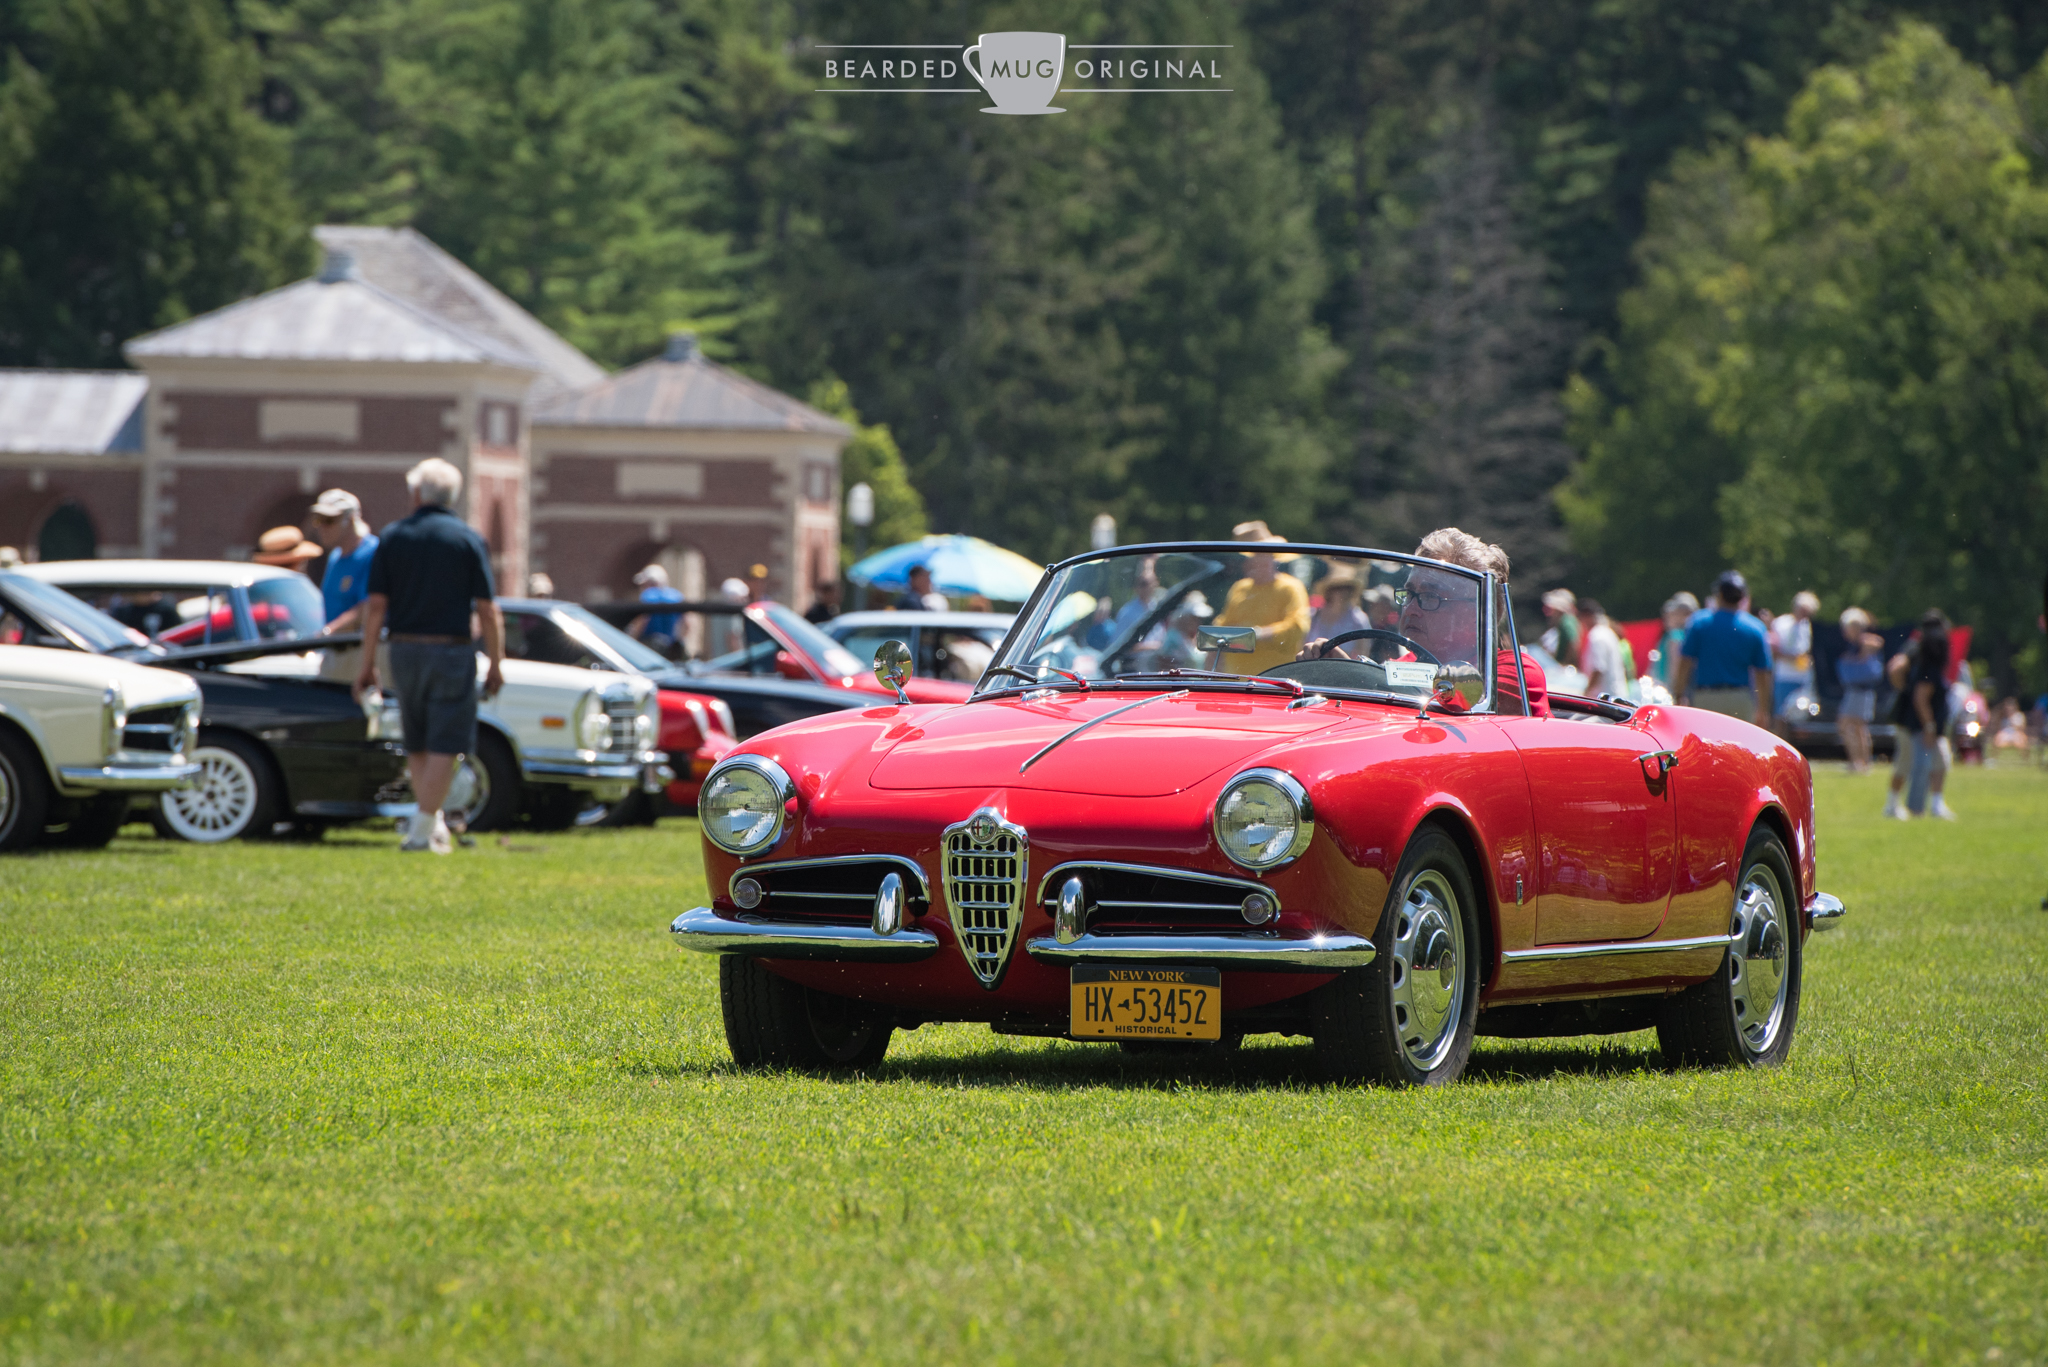 The Alfa Romeo Giulietta Spider combines top-down motoring with that unmistakable sound of a vintage Italian engine.